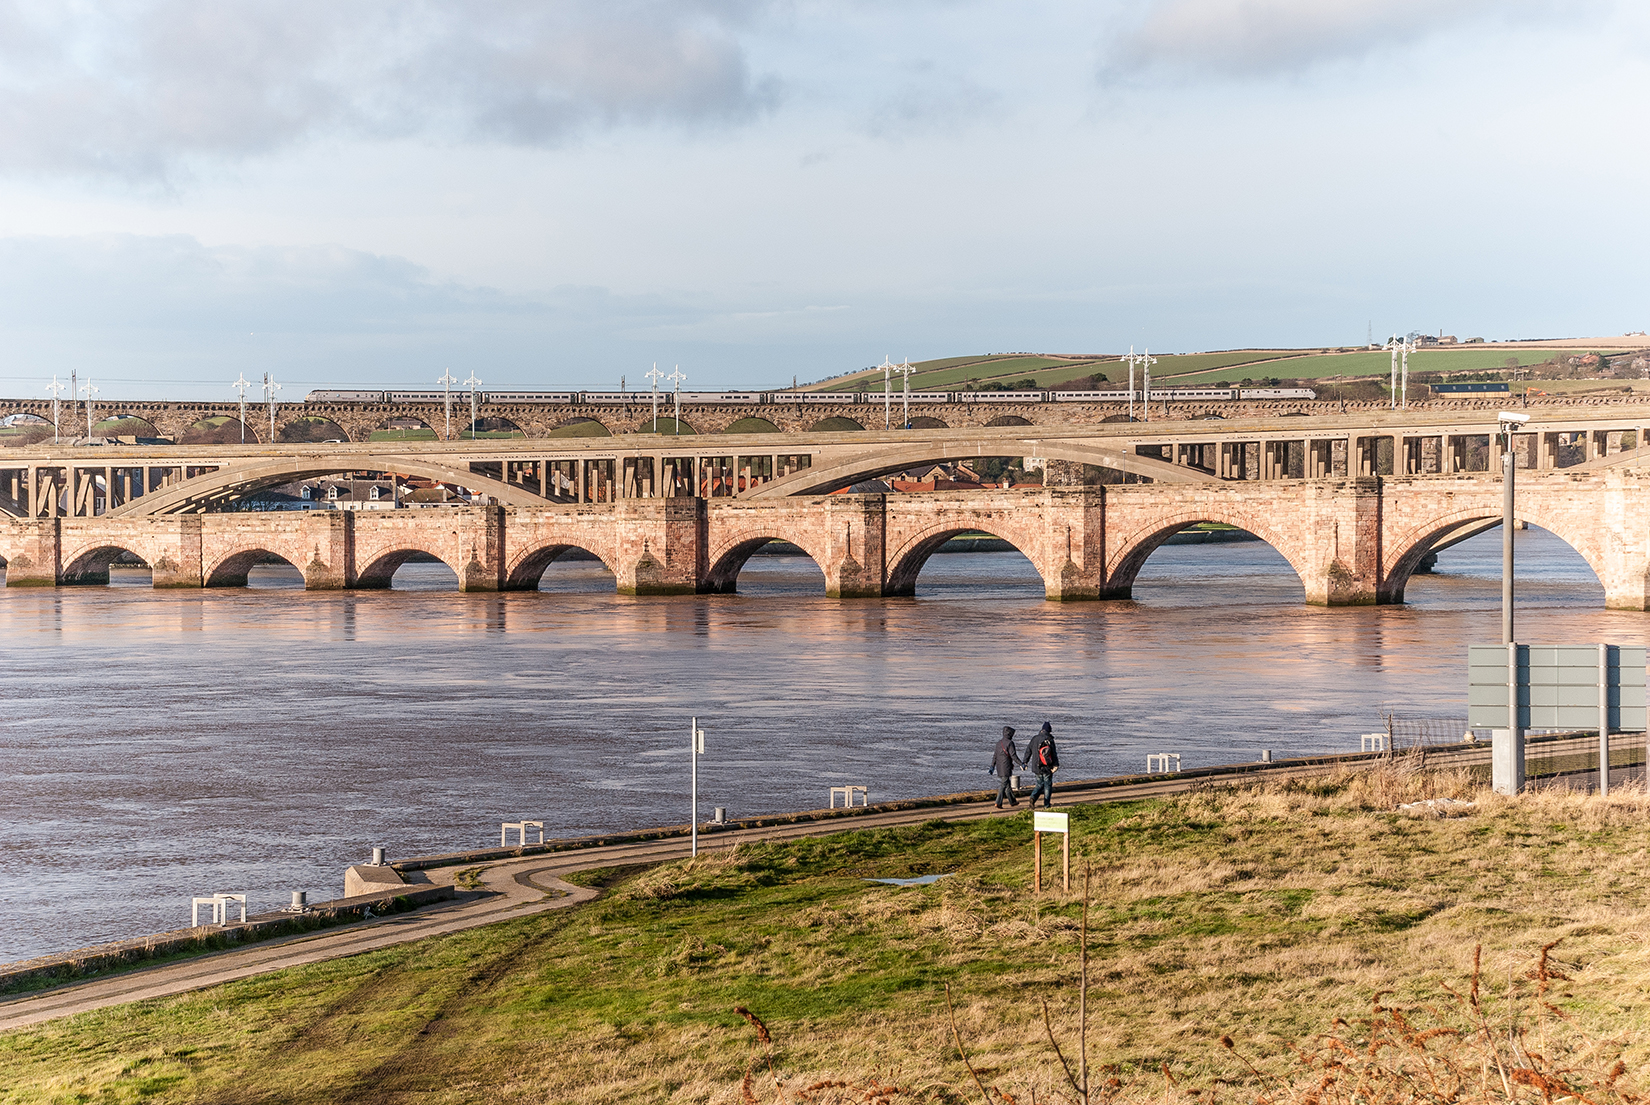 Rail and road bridges spanning the River Tweed